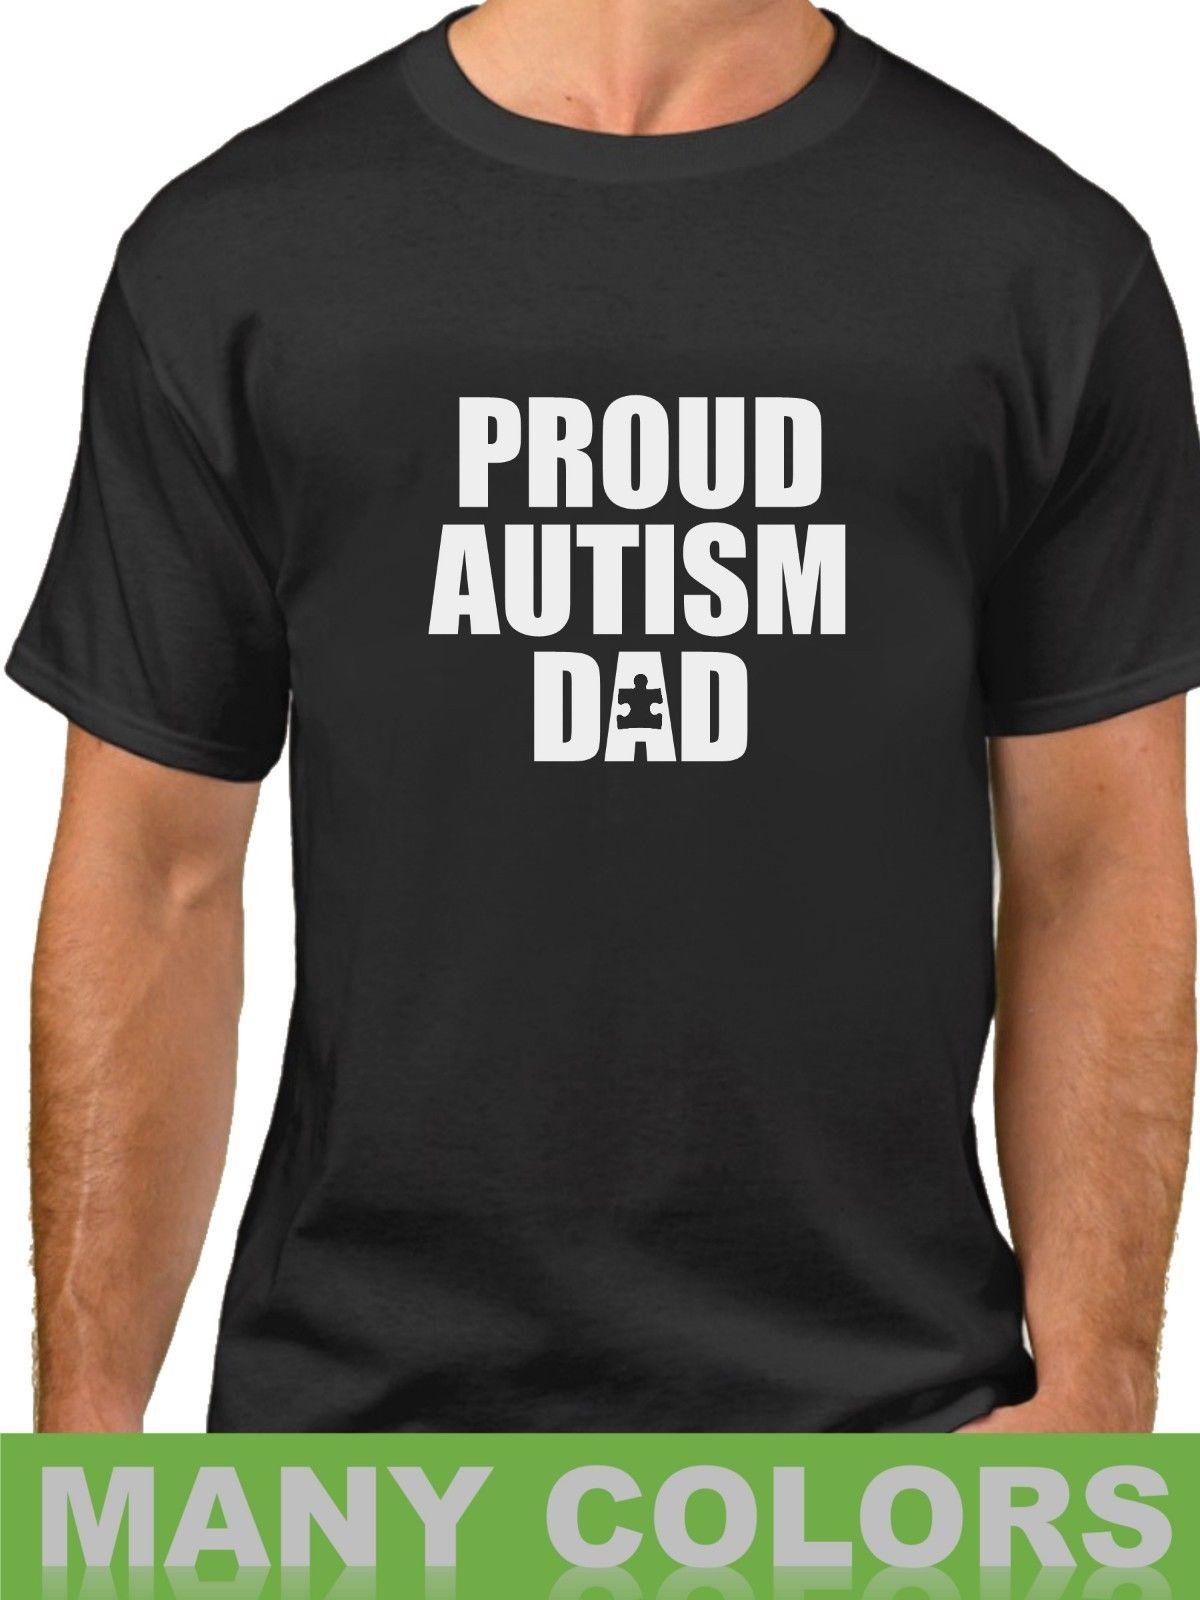 e31be0d8 Details Zu Proud Autism Dad Shirt Autistic Kid Awareness T Shirt Fathers  Day Support Tee Funny Unisex Tee Clothes T Shirt Crazy T Shirts Designs  From ...